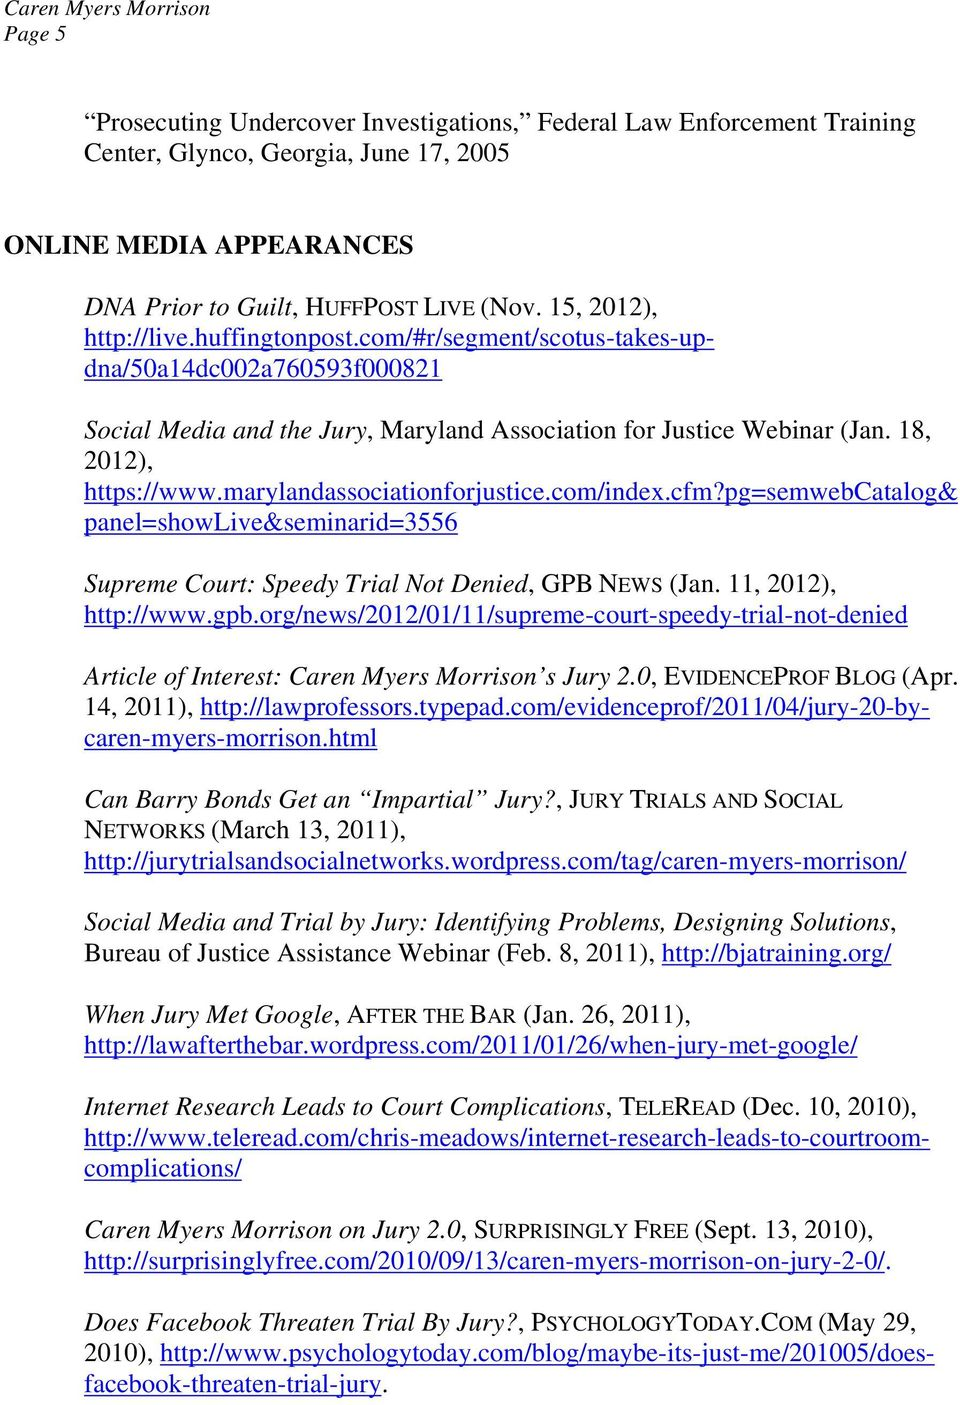 marylandassociationforjustice.com/index.cfm?pg=semwebcatalog& panel=showlive&seminarid=3556 Supreme Court: Speedy Trial Not Denied, GPB NEWS (Jan. 11, 2012), http://www.gpb.